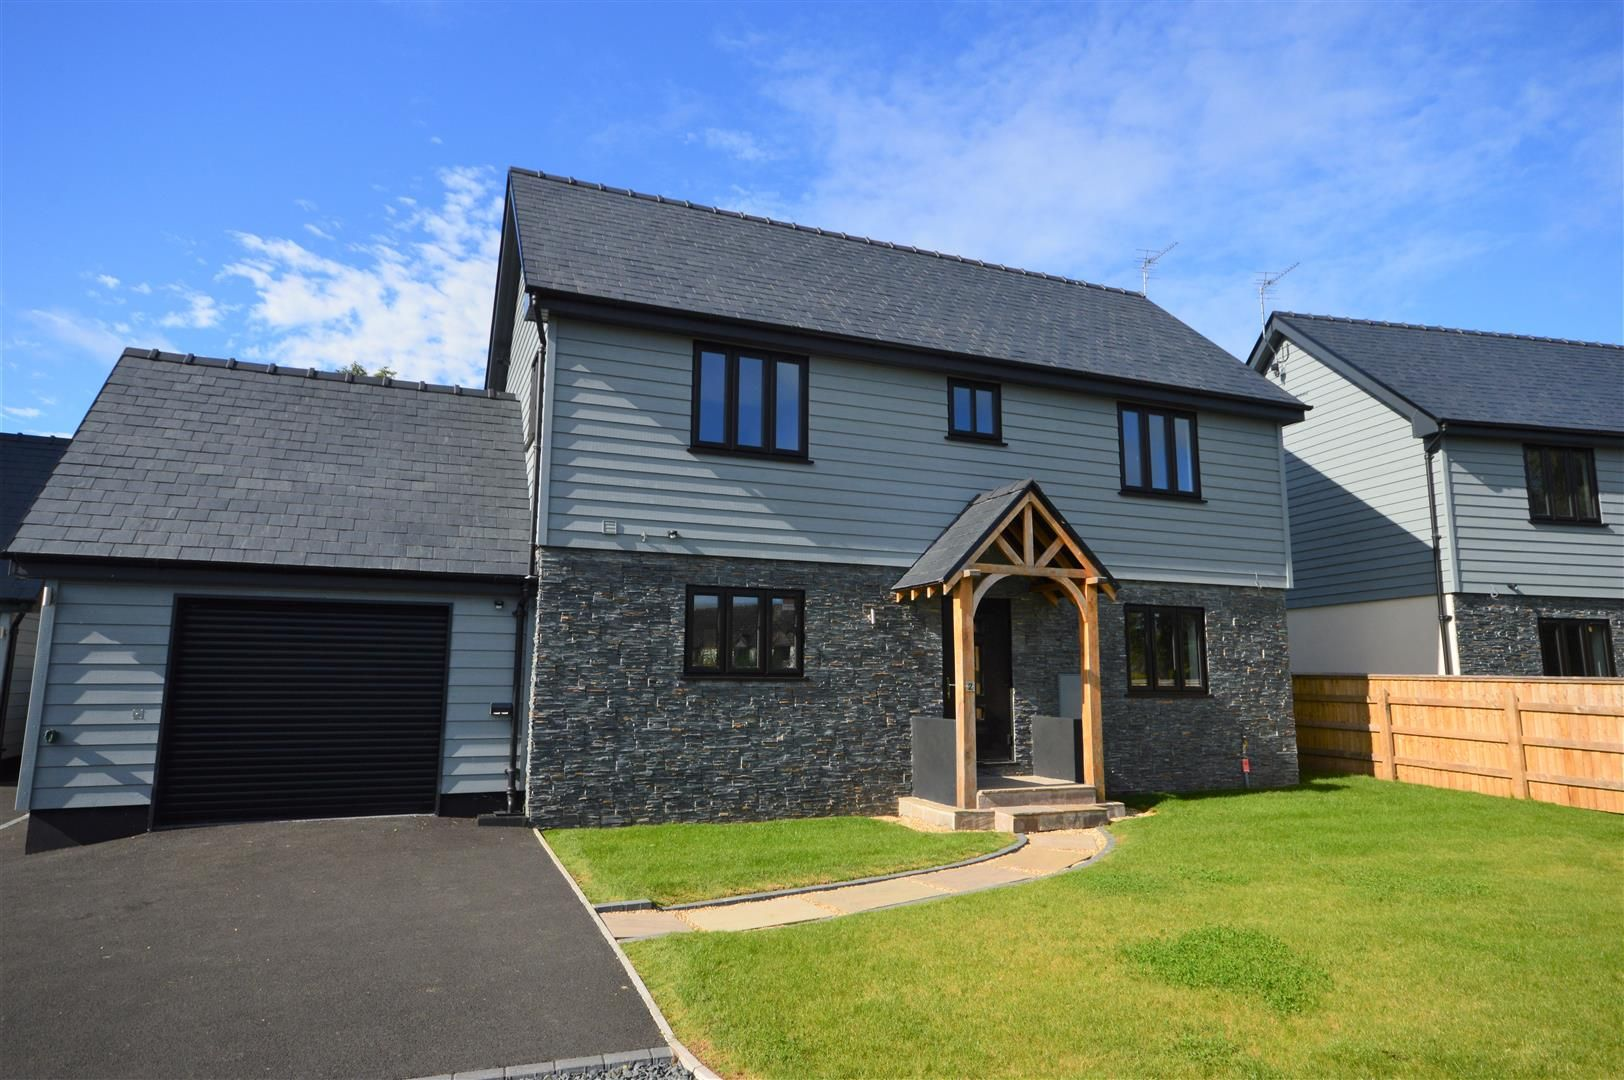 4 bed detached for sale in Brimfield 1